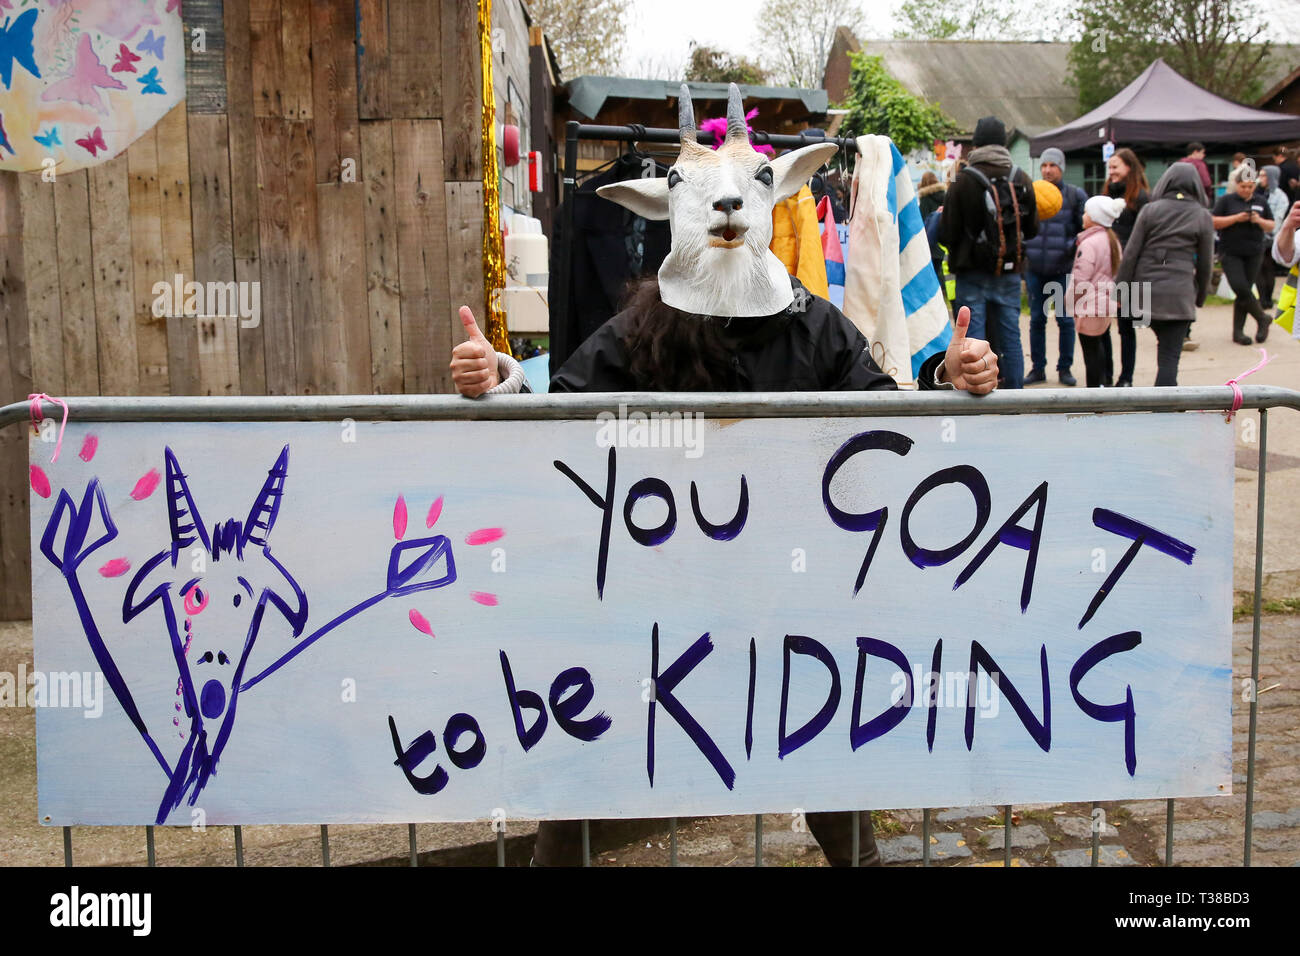 London, UK, UK. 7th Apr, 2019. A man seen wearing a goat horns face mask while holding a banner that says you goat to be kidding before the Oxford vs Cambridge Goat Race in East London.Two pygmy goats compete during the 10th Oxford and Cambridge Goat Race at Spitalfields City Farm, Bethnal Green in East London. The annual fundraising event, which takes place at the same time as the Oxford and Cambridge boat race, where two goats, one named Hamish representing Oxford and the other Hugo representing Cambridge to be crowned King Billy. (Credit Image: © Dinendra Haria/SOPA Images vi - Stock Image